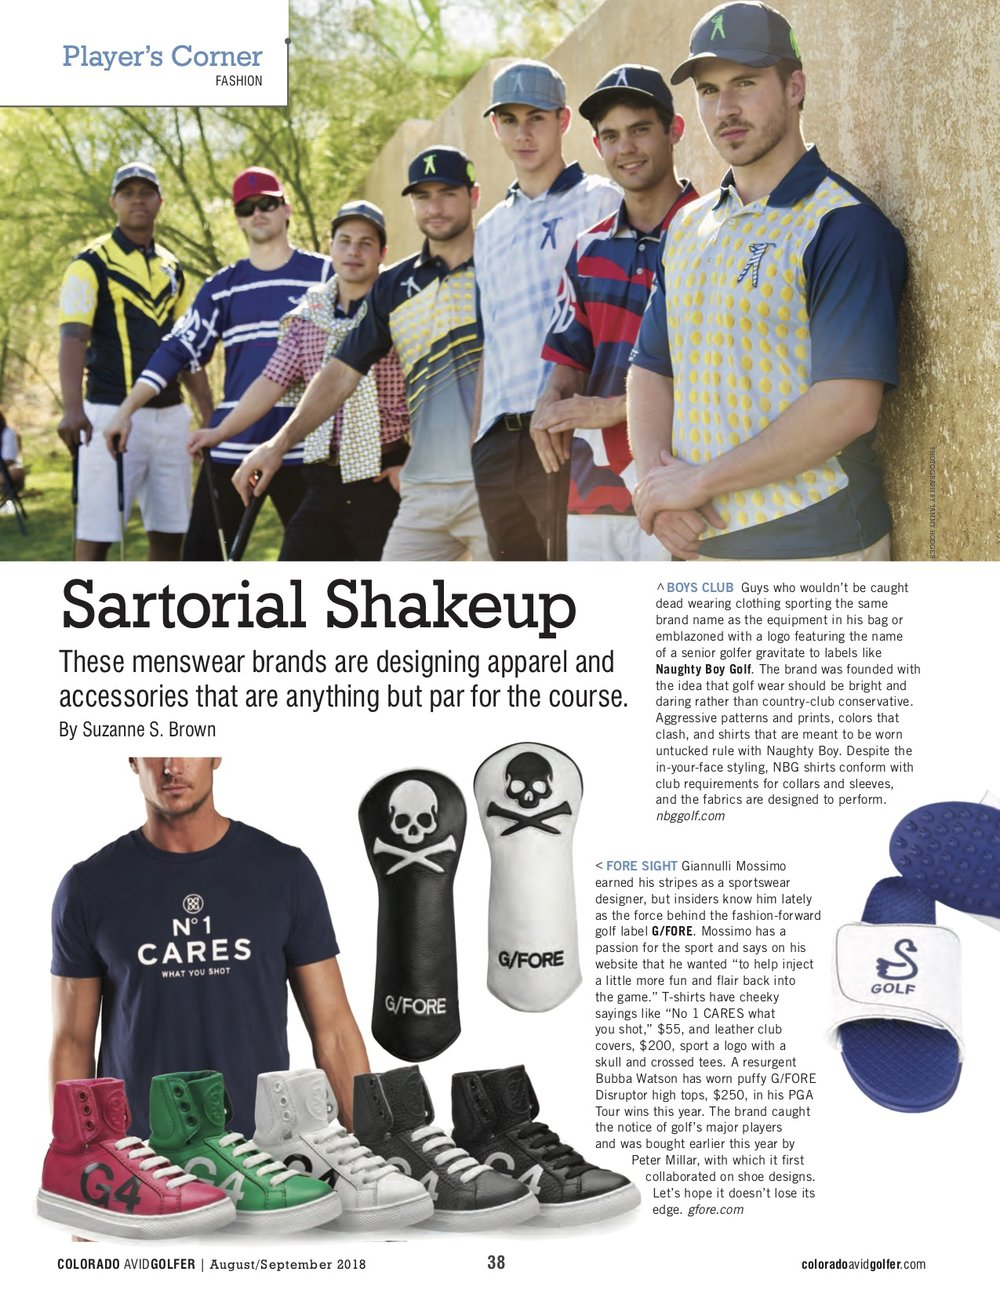 These brands are shaking it up in the golf world, as I wrote about in Colorado Avid Golfer.